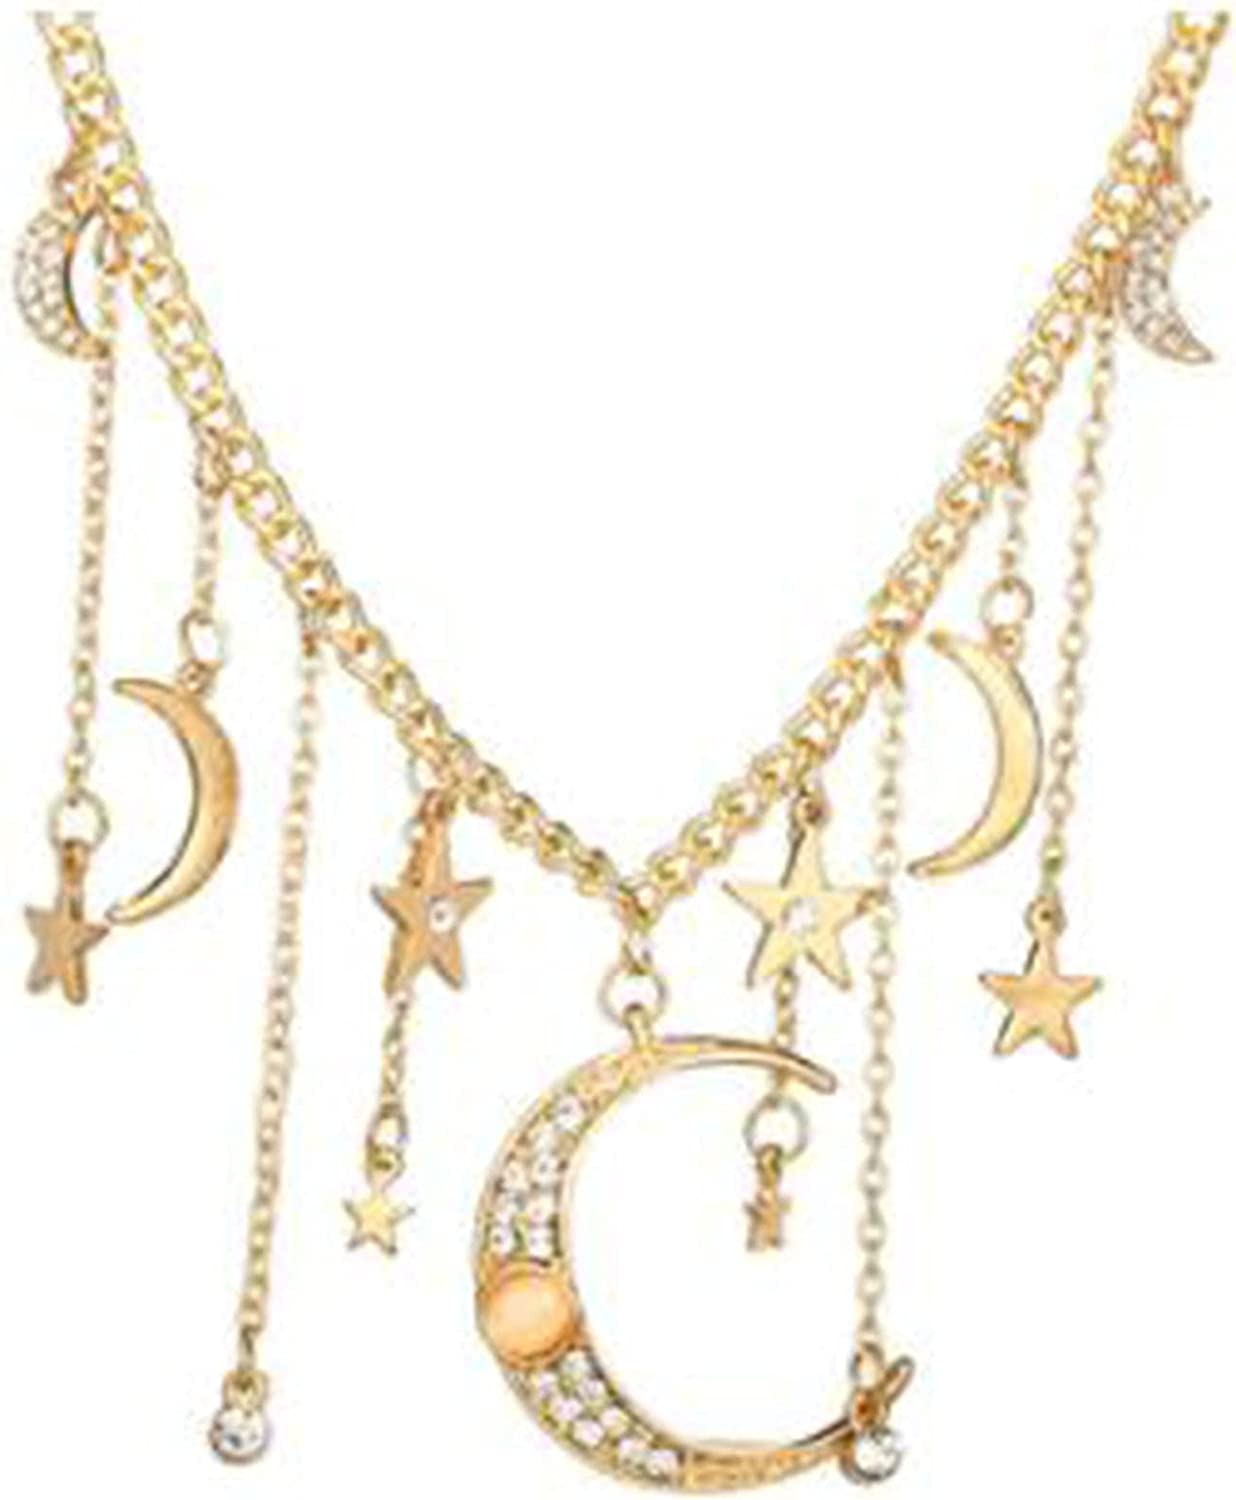 Underleaf Fashion Bohemia Crystal Crescent Moon Star Necklaces Tassel Long Drop Pendants Retro Gold Color Delicate Chain Necklace Accessories Jewelry for Women Girls